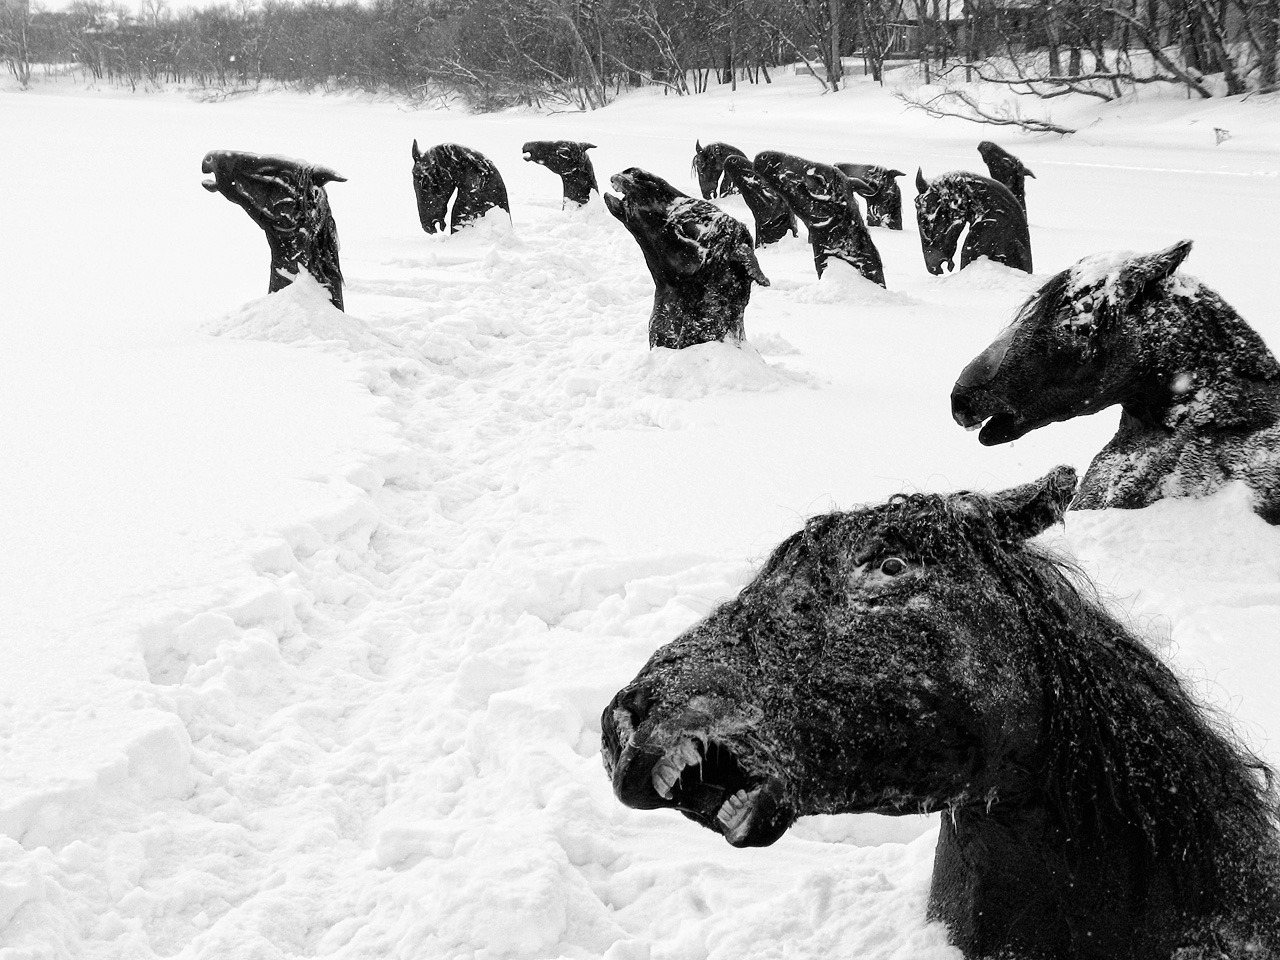 "thekhooll:  Frozen ""During 1926 cold winter, all the horses from the hippodrome fled away after the stables went on fire. Their only scape-way was the river. But they all froze before managing to reach the opposite side. Their sculptural heads with terror still in their eyes served as a leisure park that season. I wonder in which moment the following spring carried them out into the sea, without anyone noticing."" By Guy Maddin,  My Winnipeg (film still)"